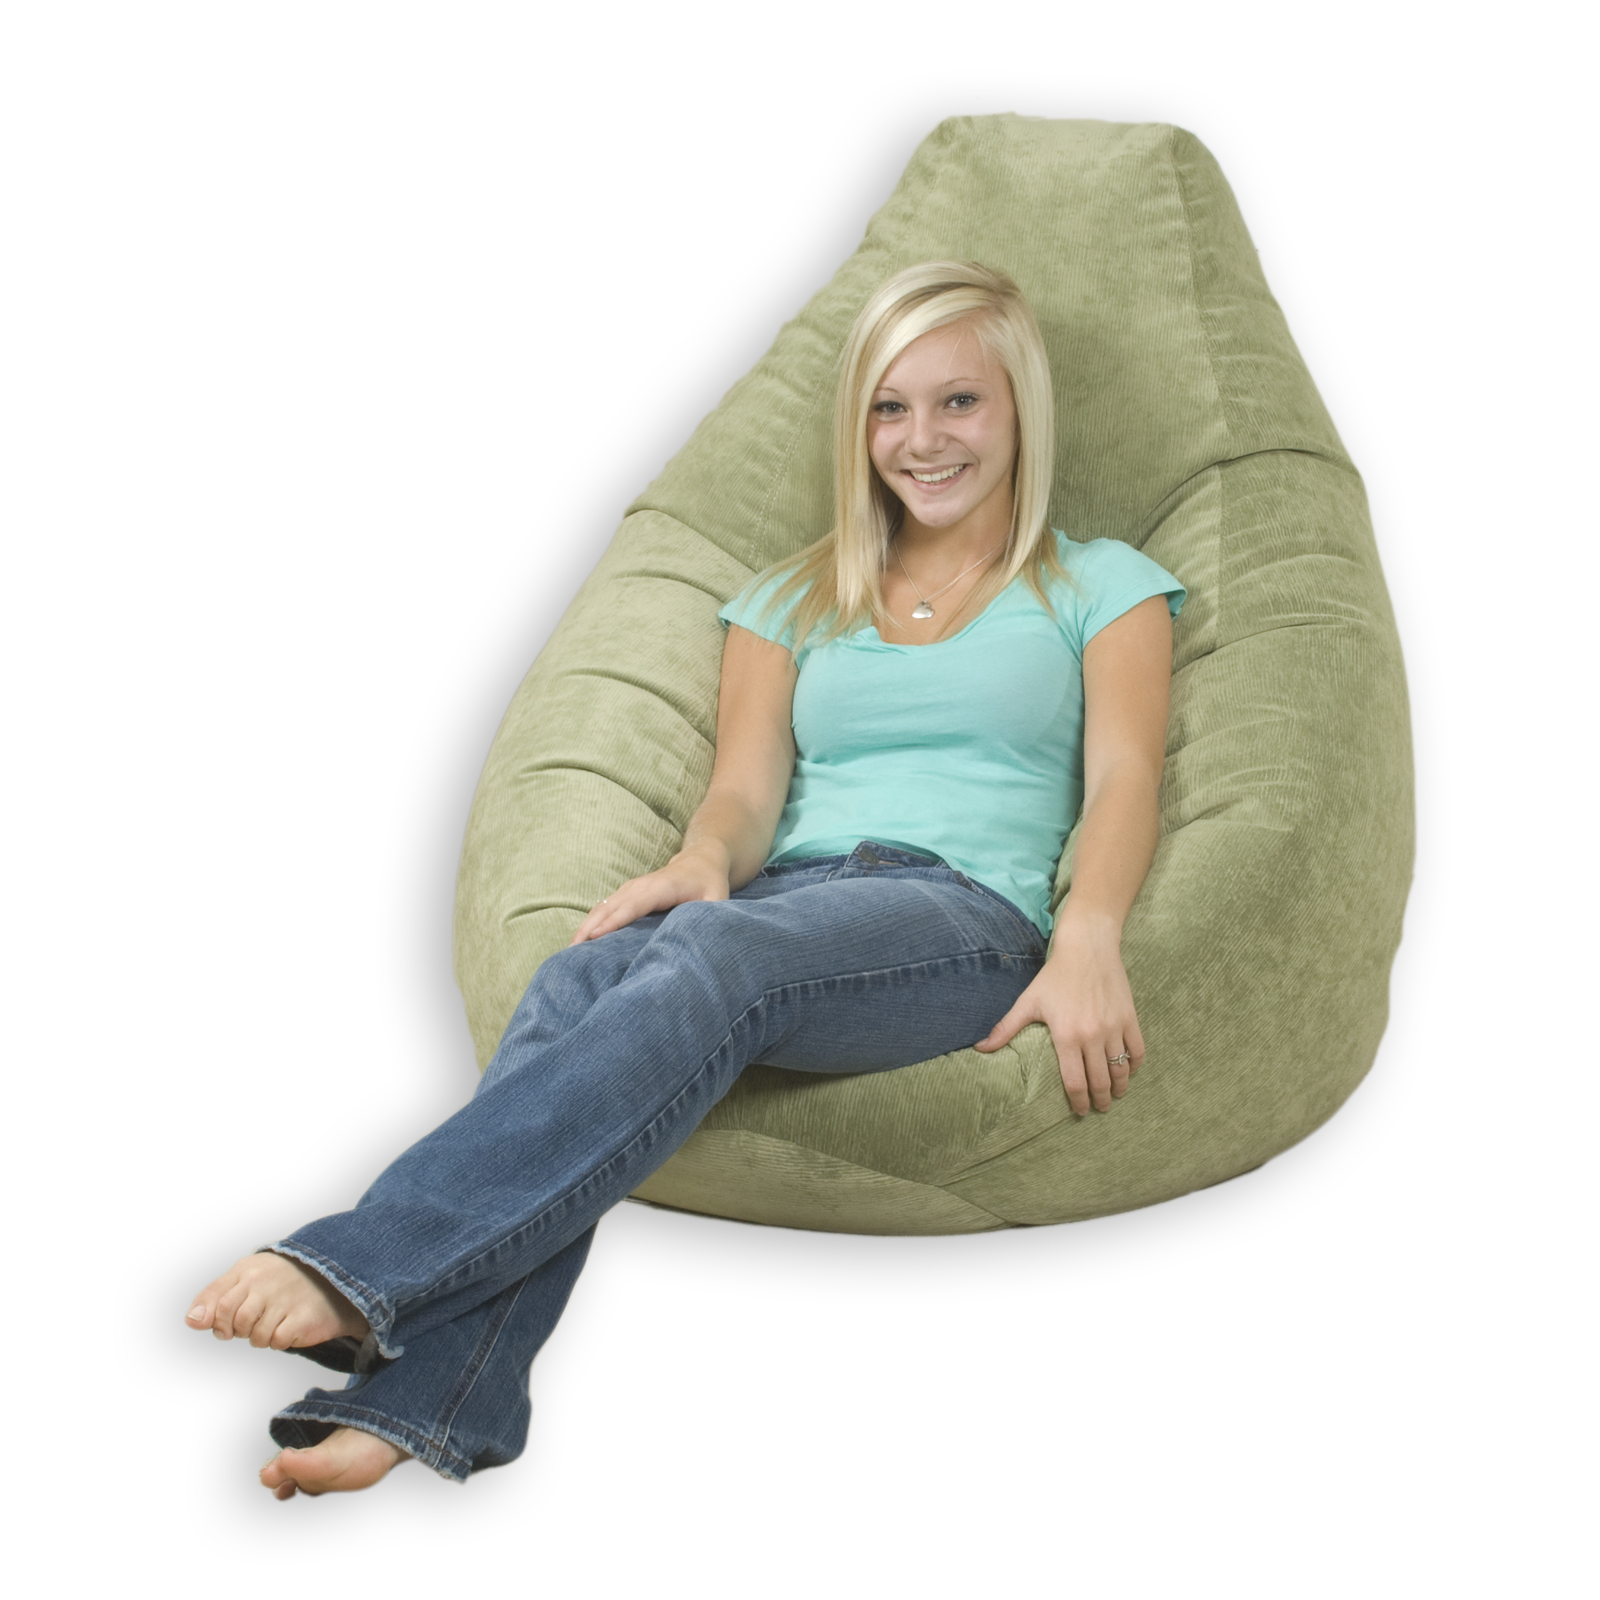 Comfortable Bean Bag Chairs Best Bean Bag Chairs For Adults Ideas With Images